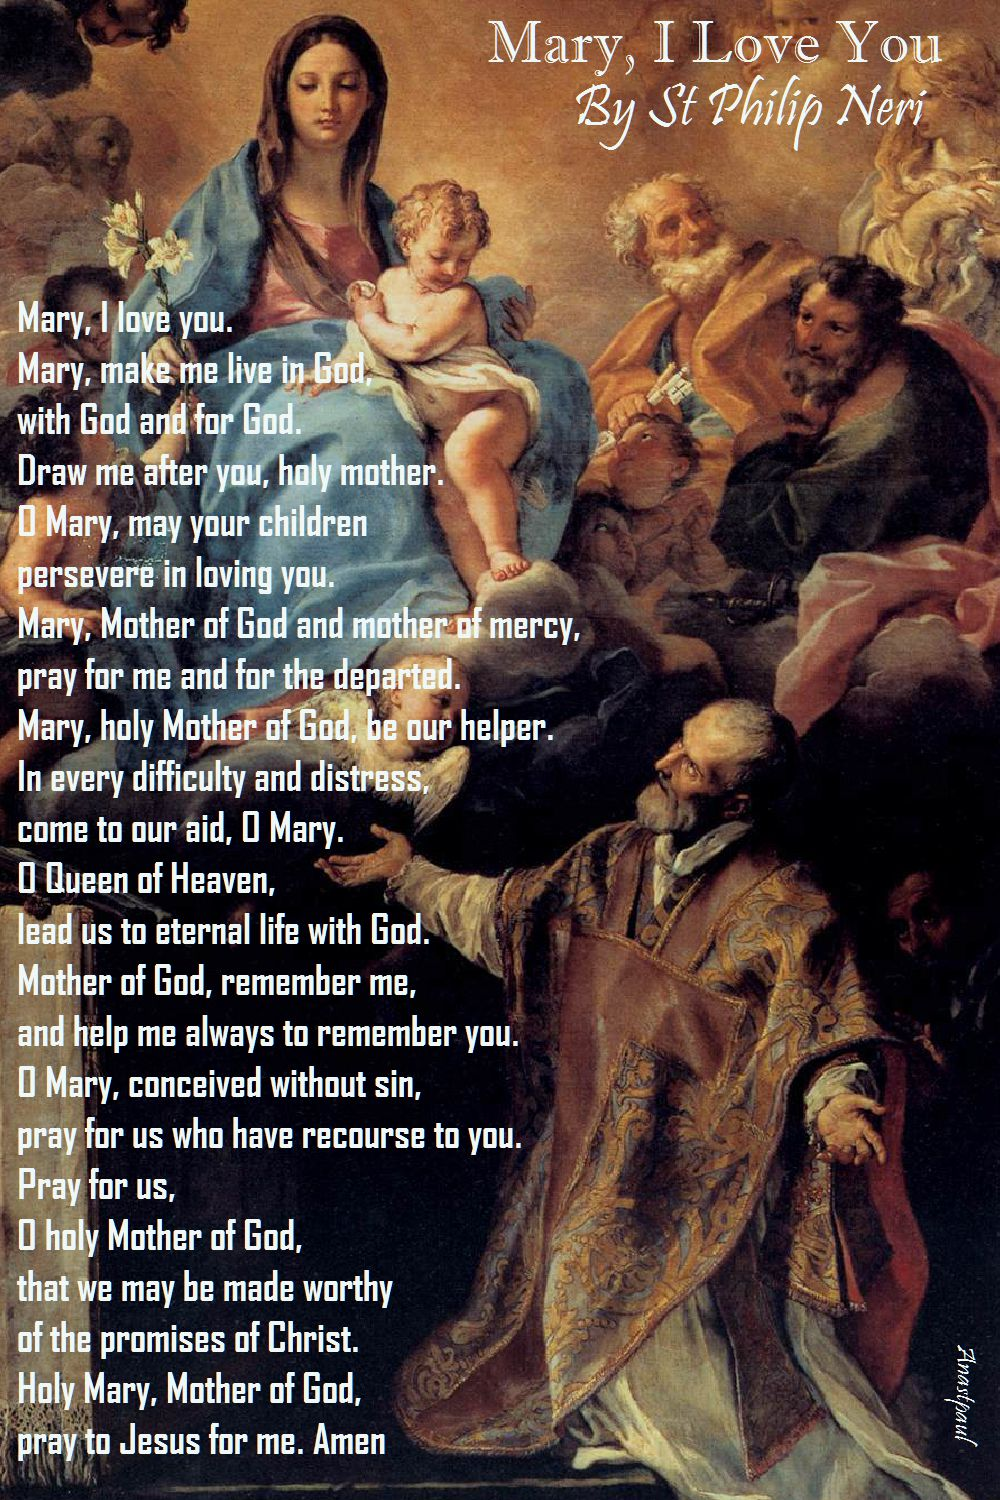 mary i love you - st philip neri